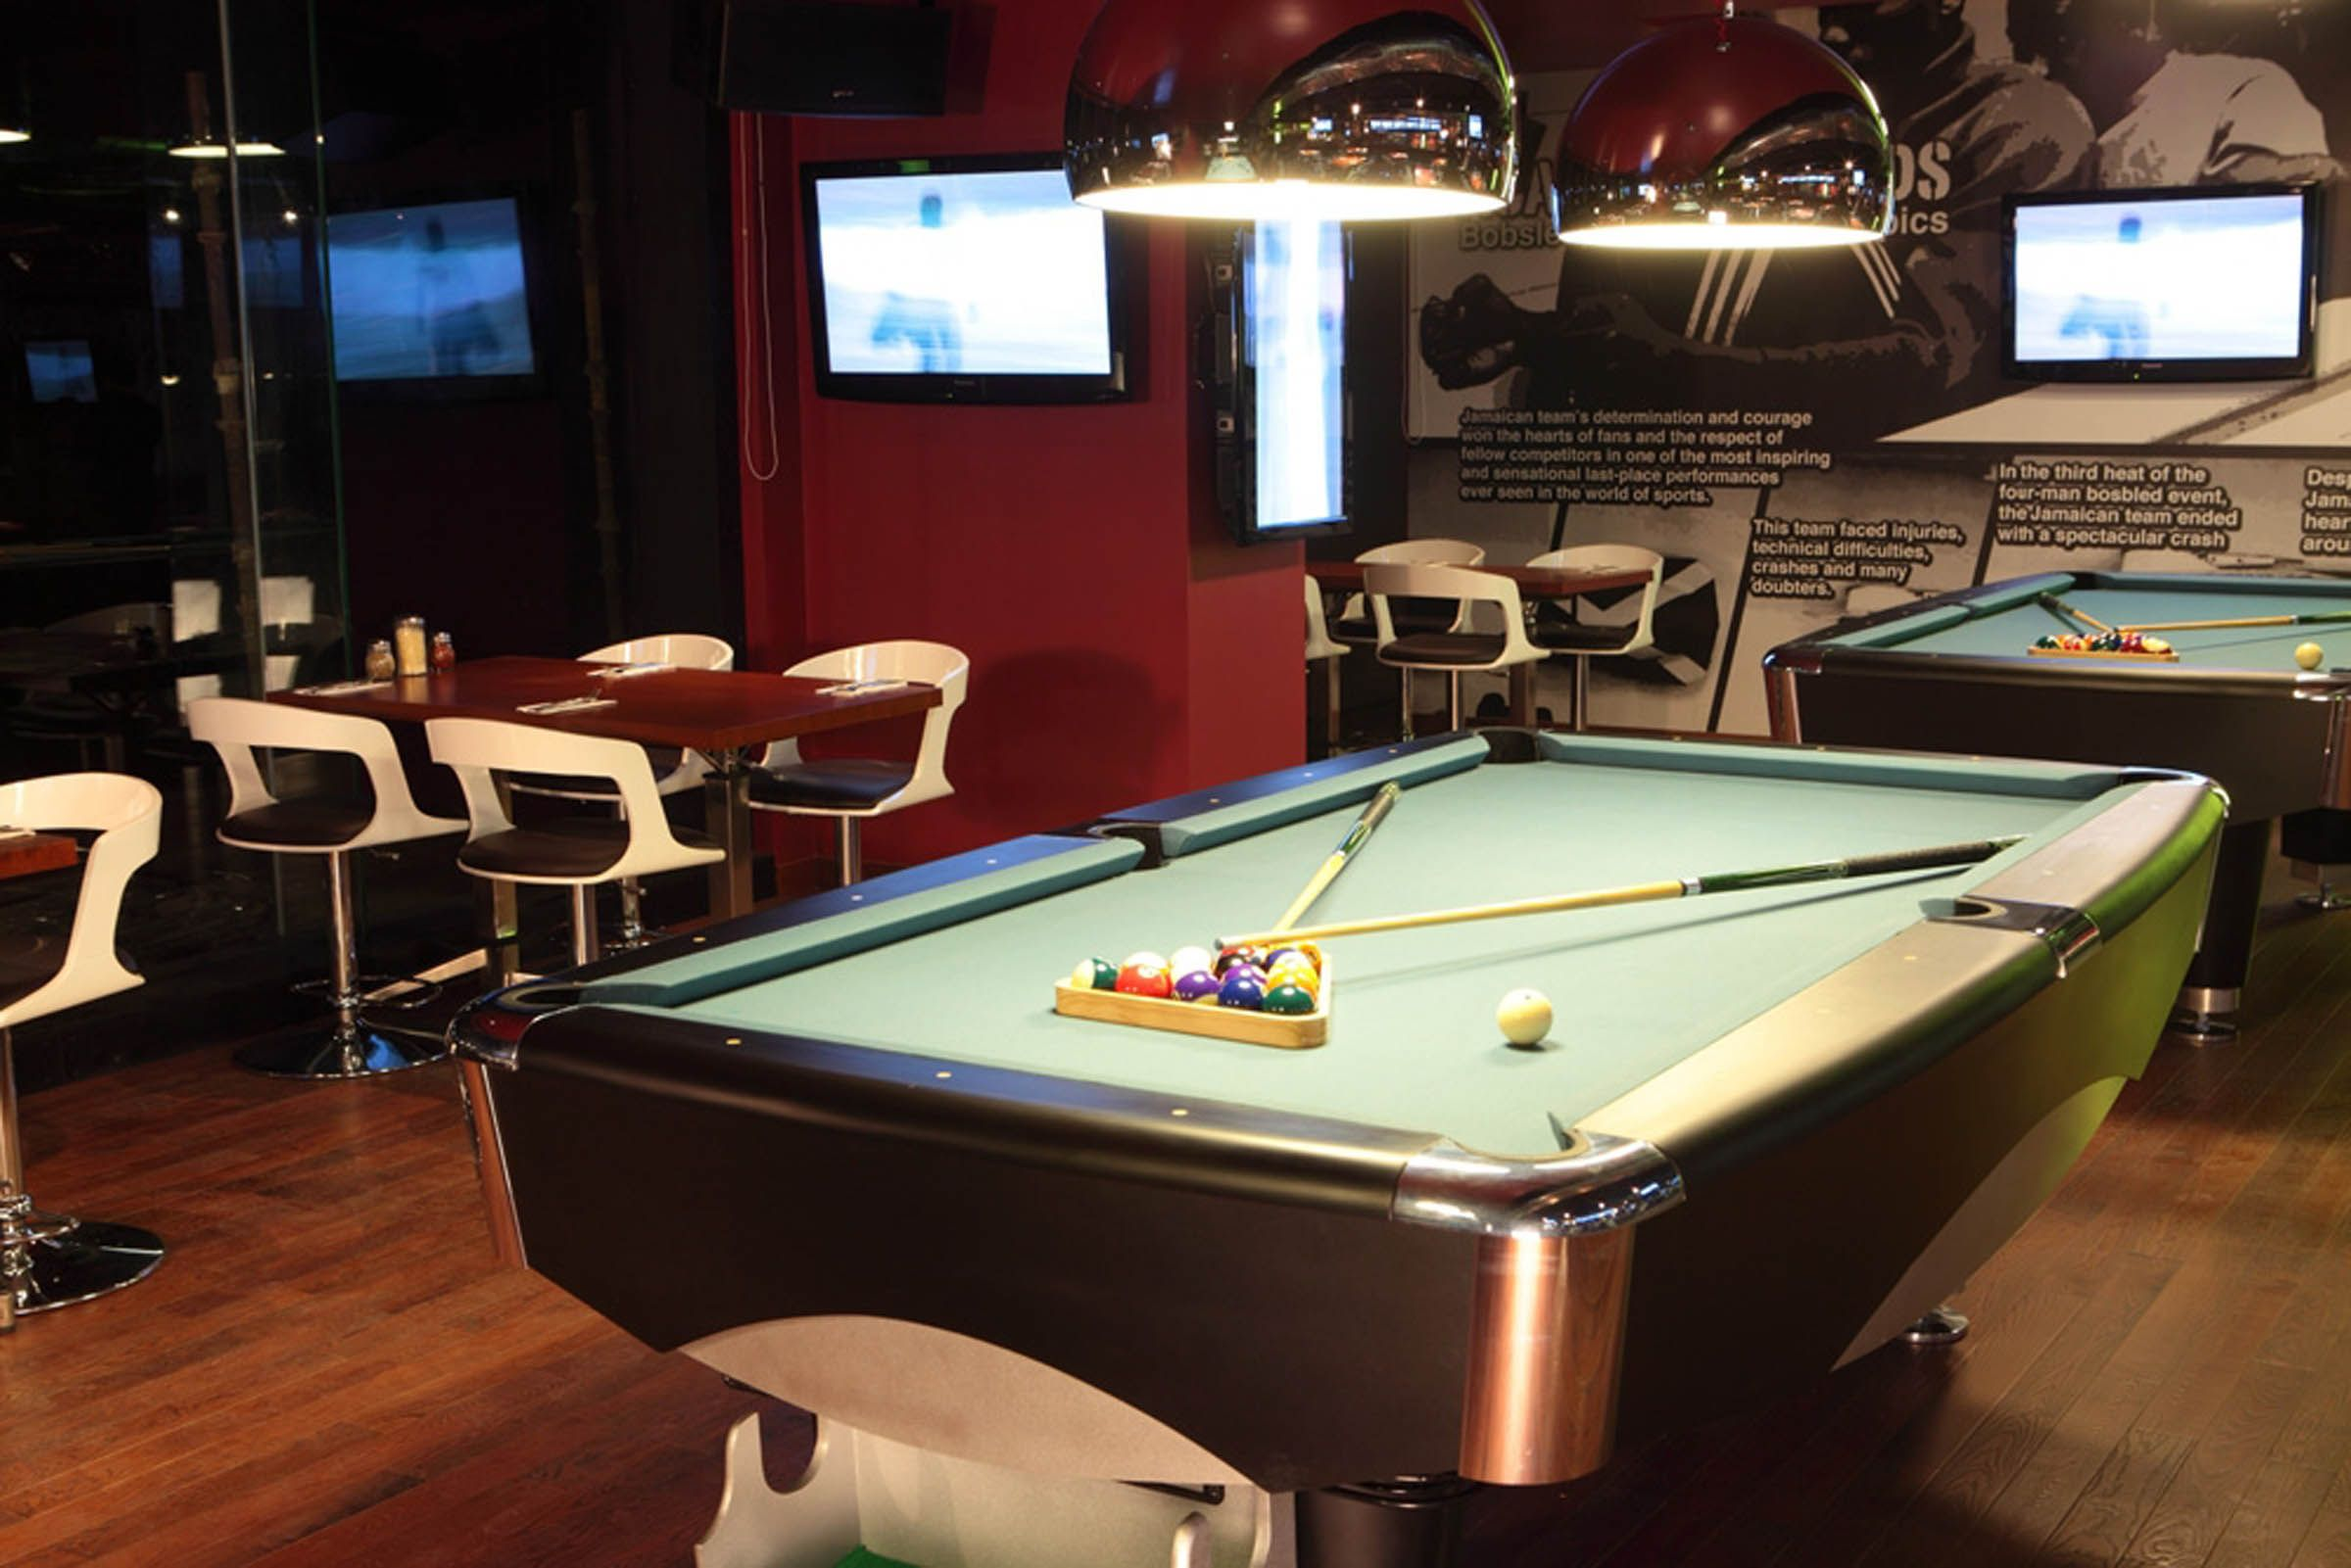 Cool Sports Bar Google Search Basement Bar Designs Sports Bar Bar Design